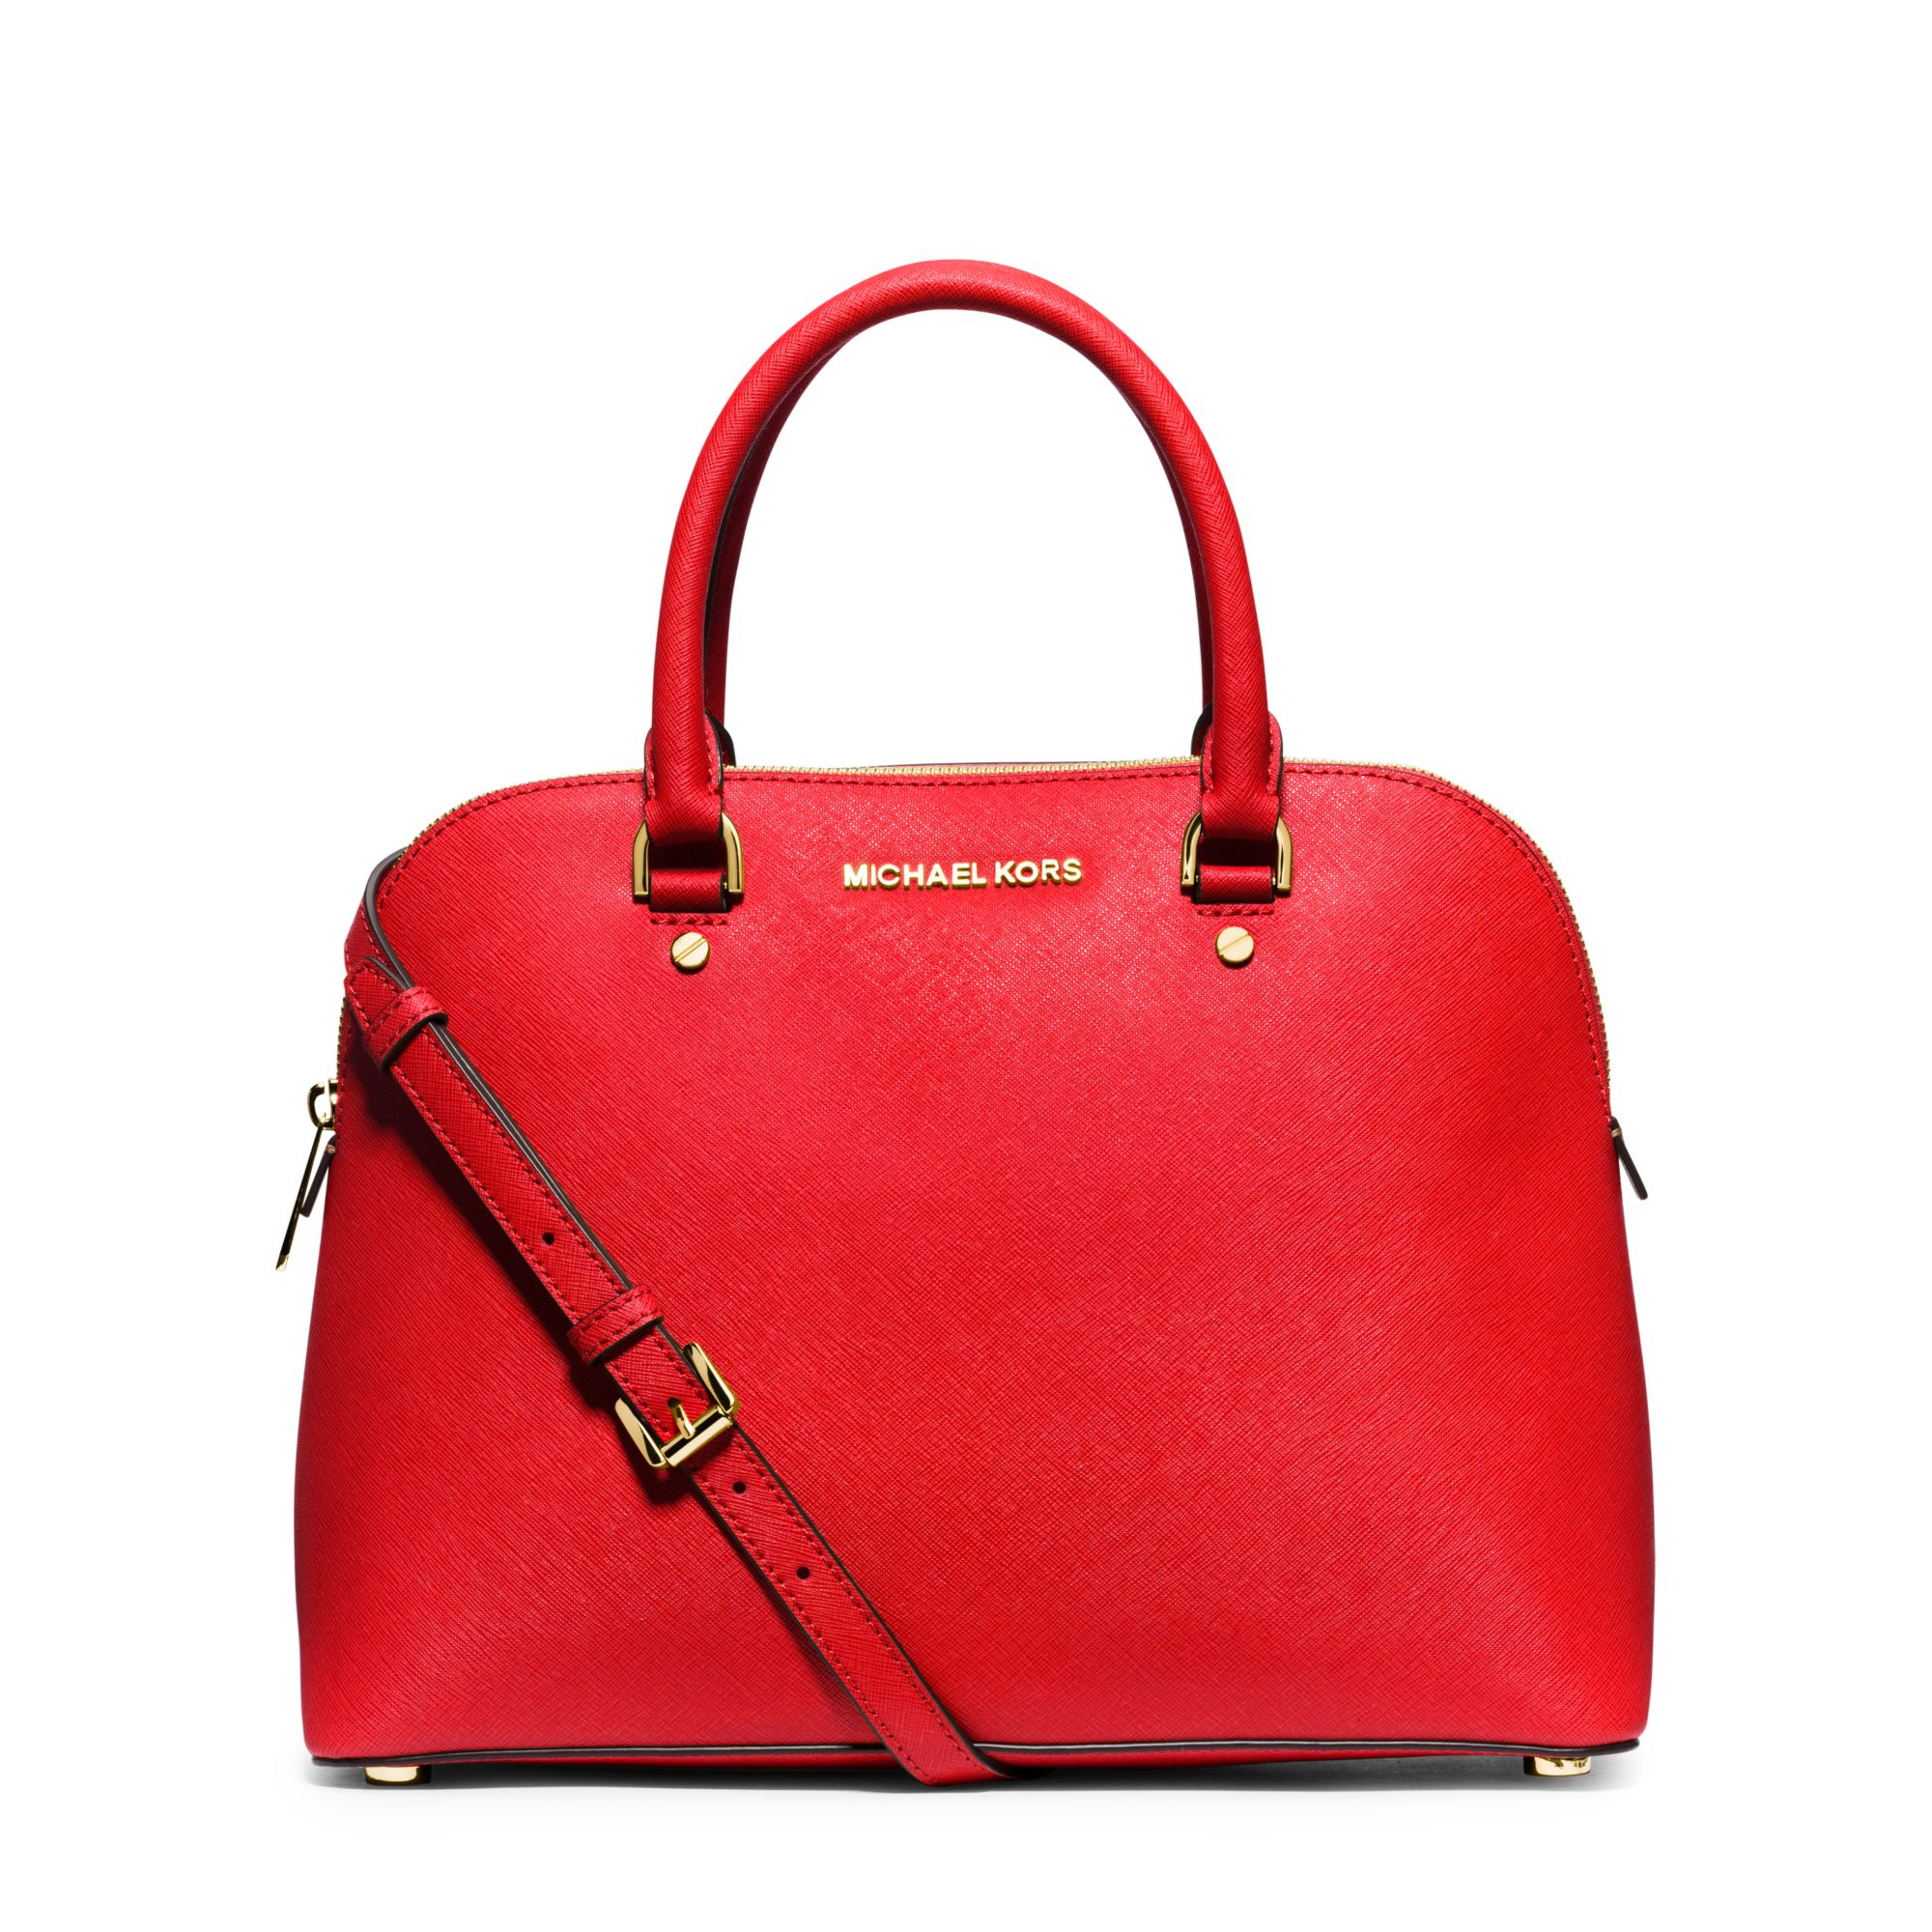 Michael Kors Cindy Laukku : Michael kors cindy large saffiano leather satchel in red